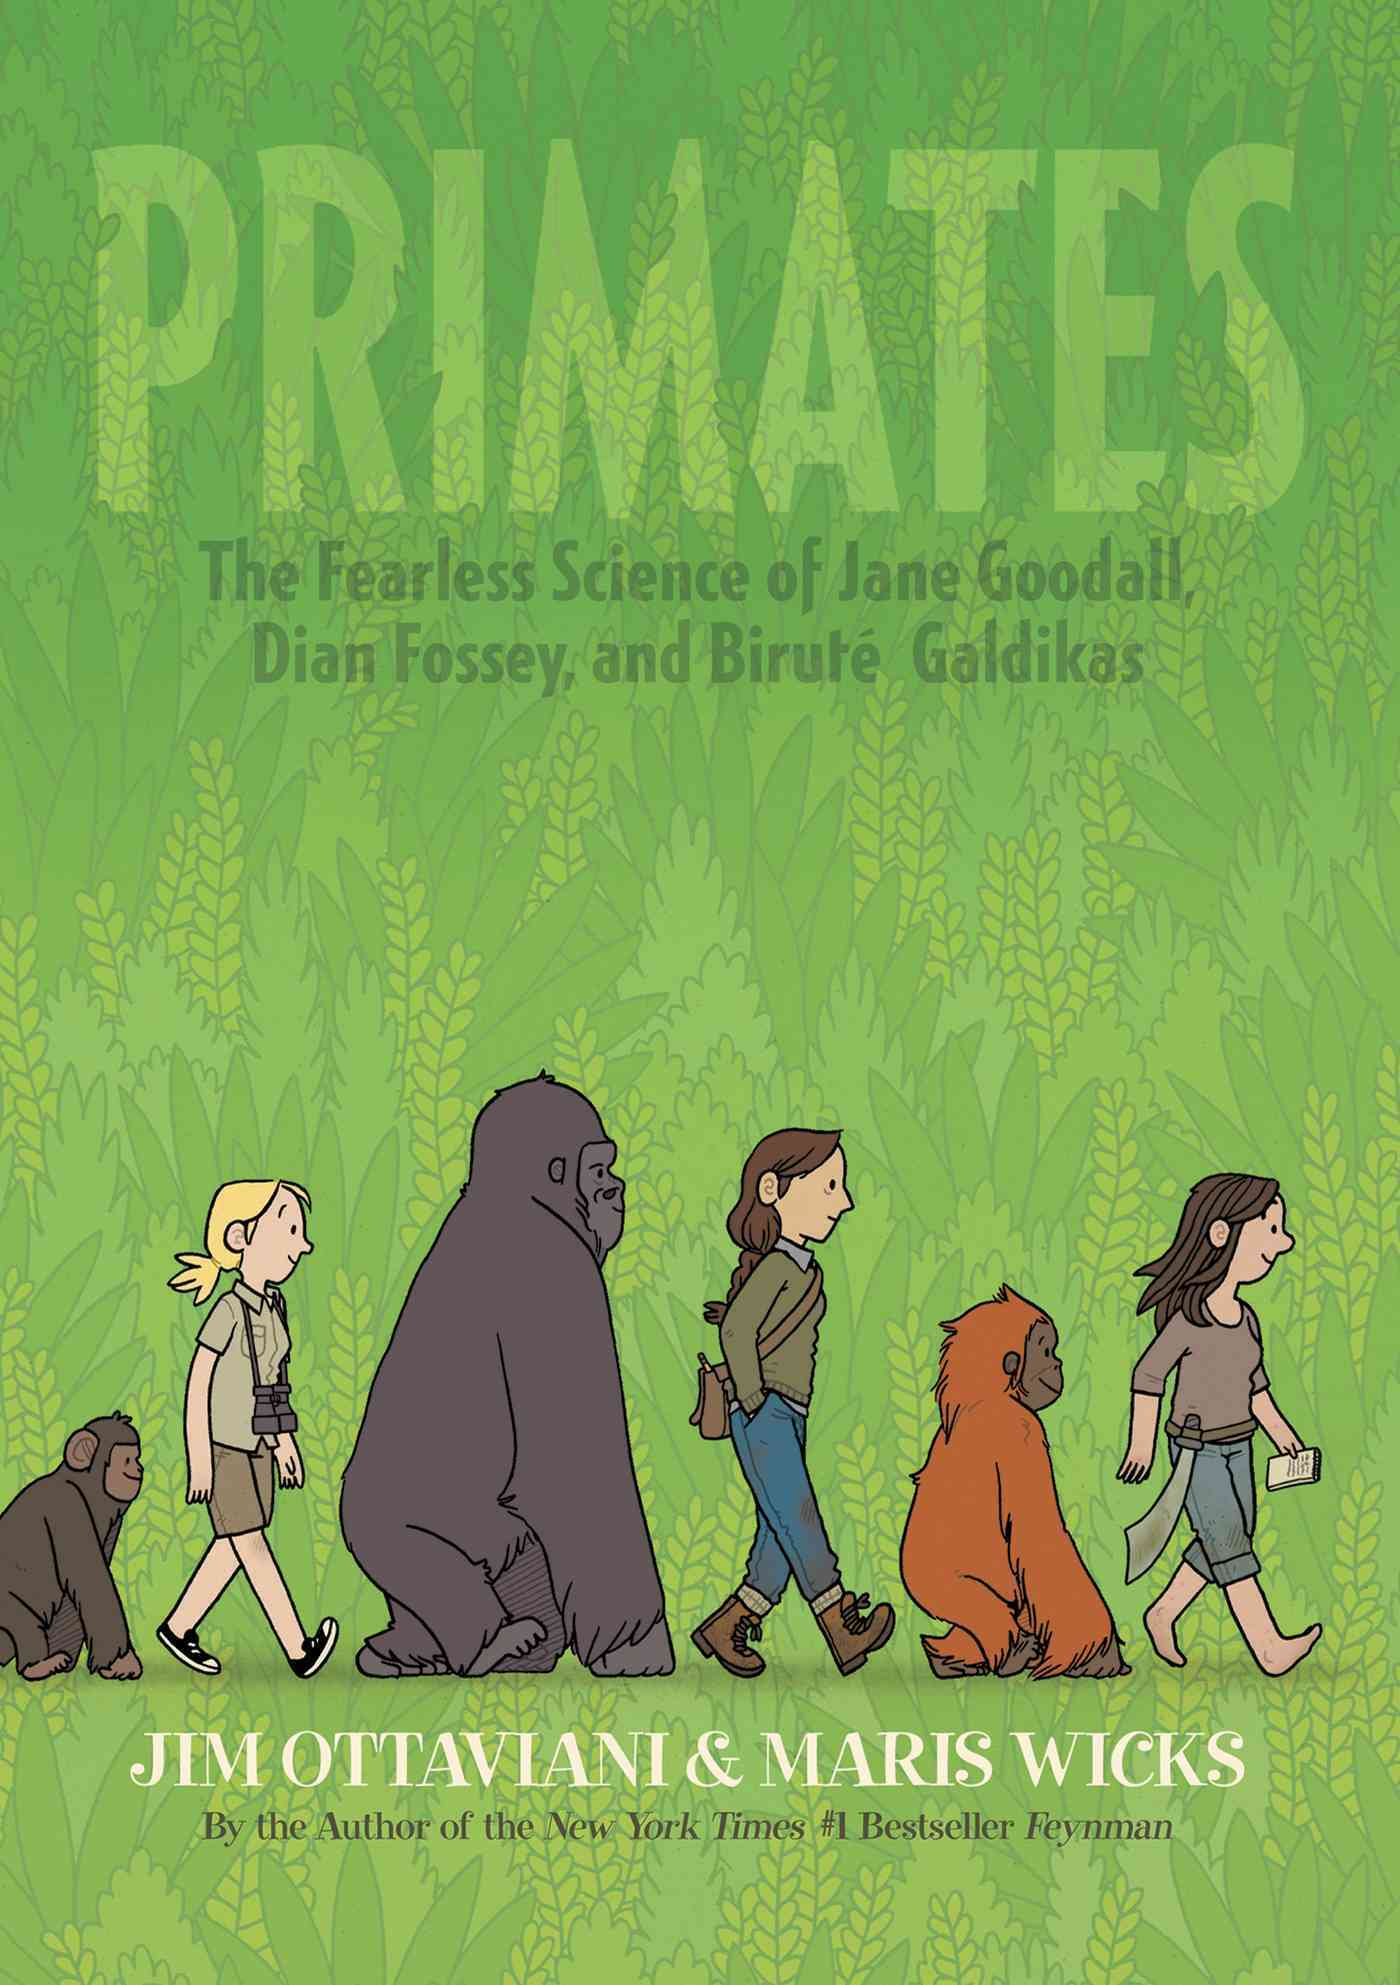 Primates By Ottaviani, Jim/ Wicks, Maris